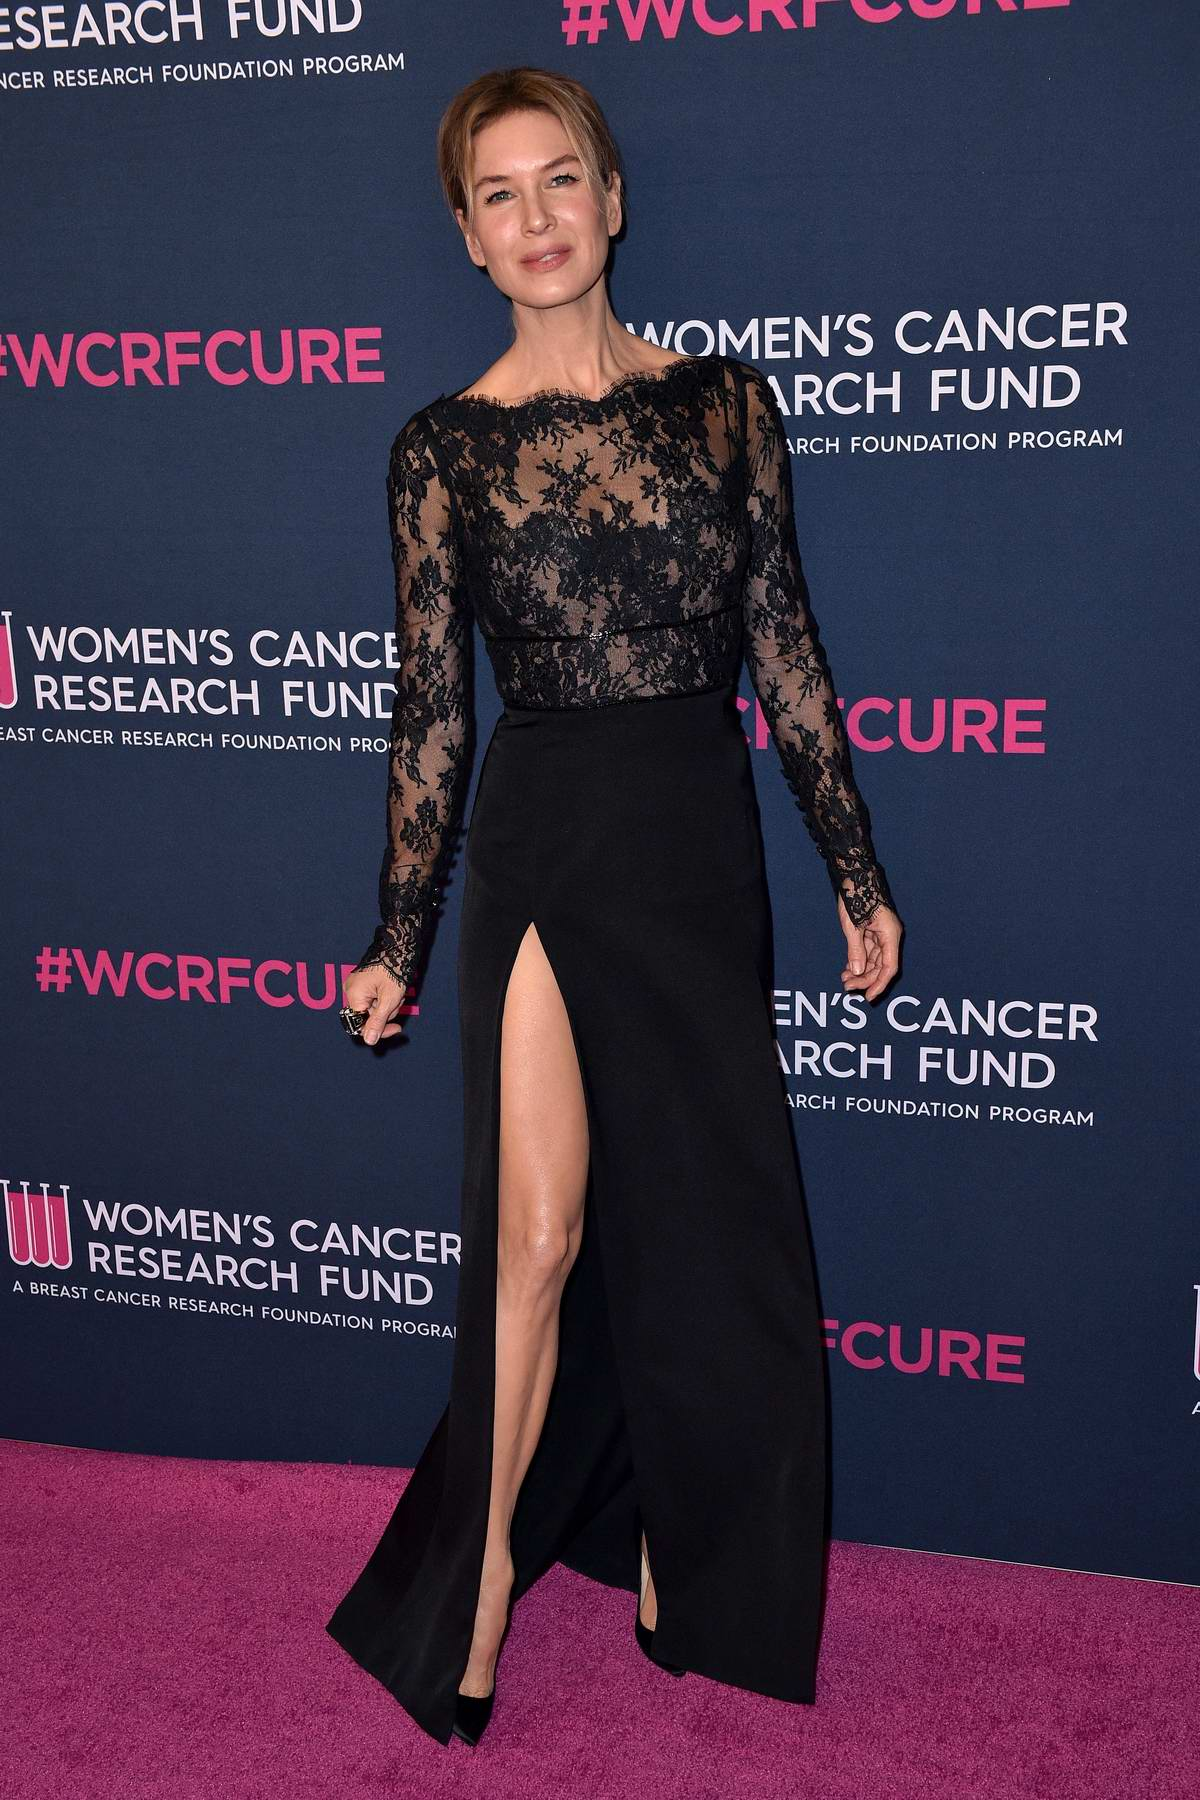 Renne Zellweger attends The Women's Cancer Research Fund hosts An Unforgettable Evening at The Beverly Wilshire in Beverly Hills, California